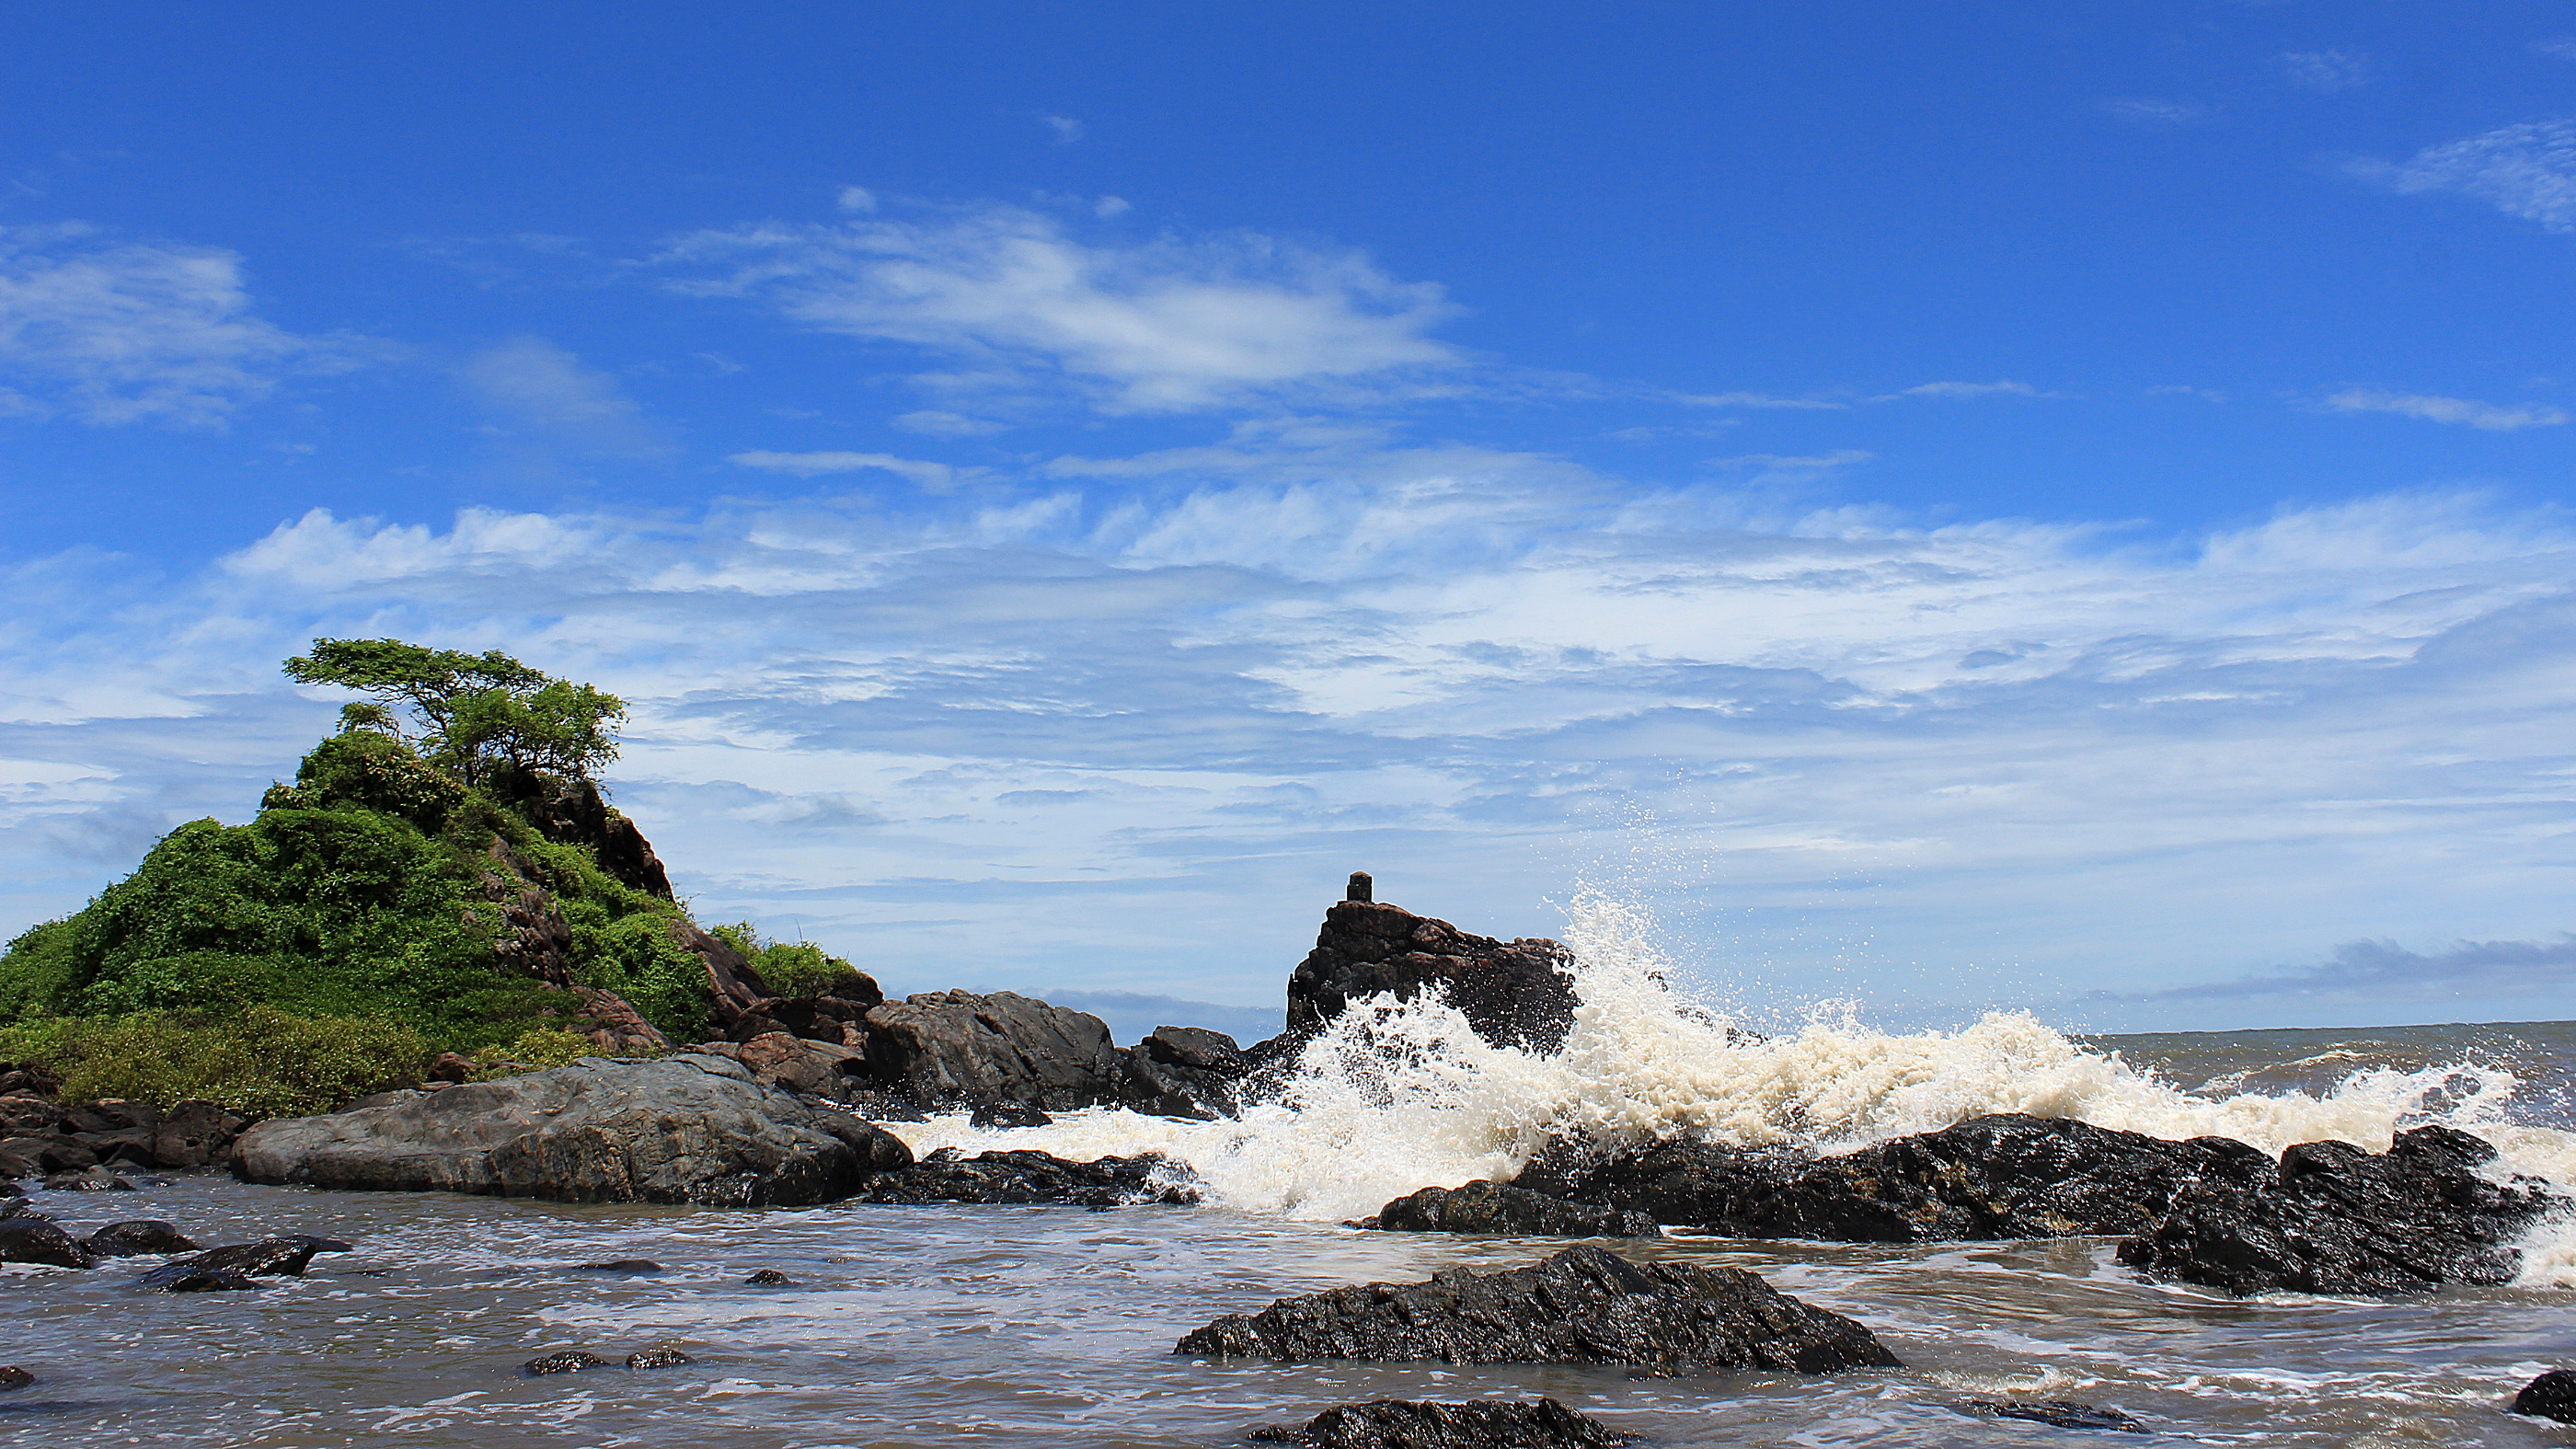 A wave hitting the rocks at Om Beach with a small green hill by the coast.